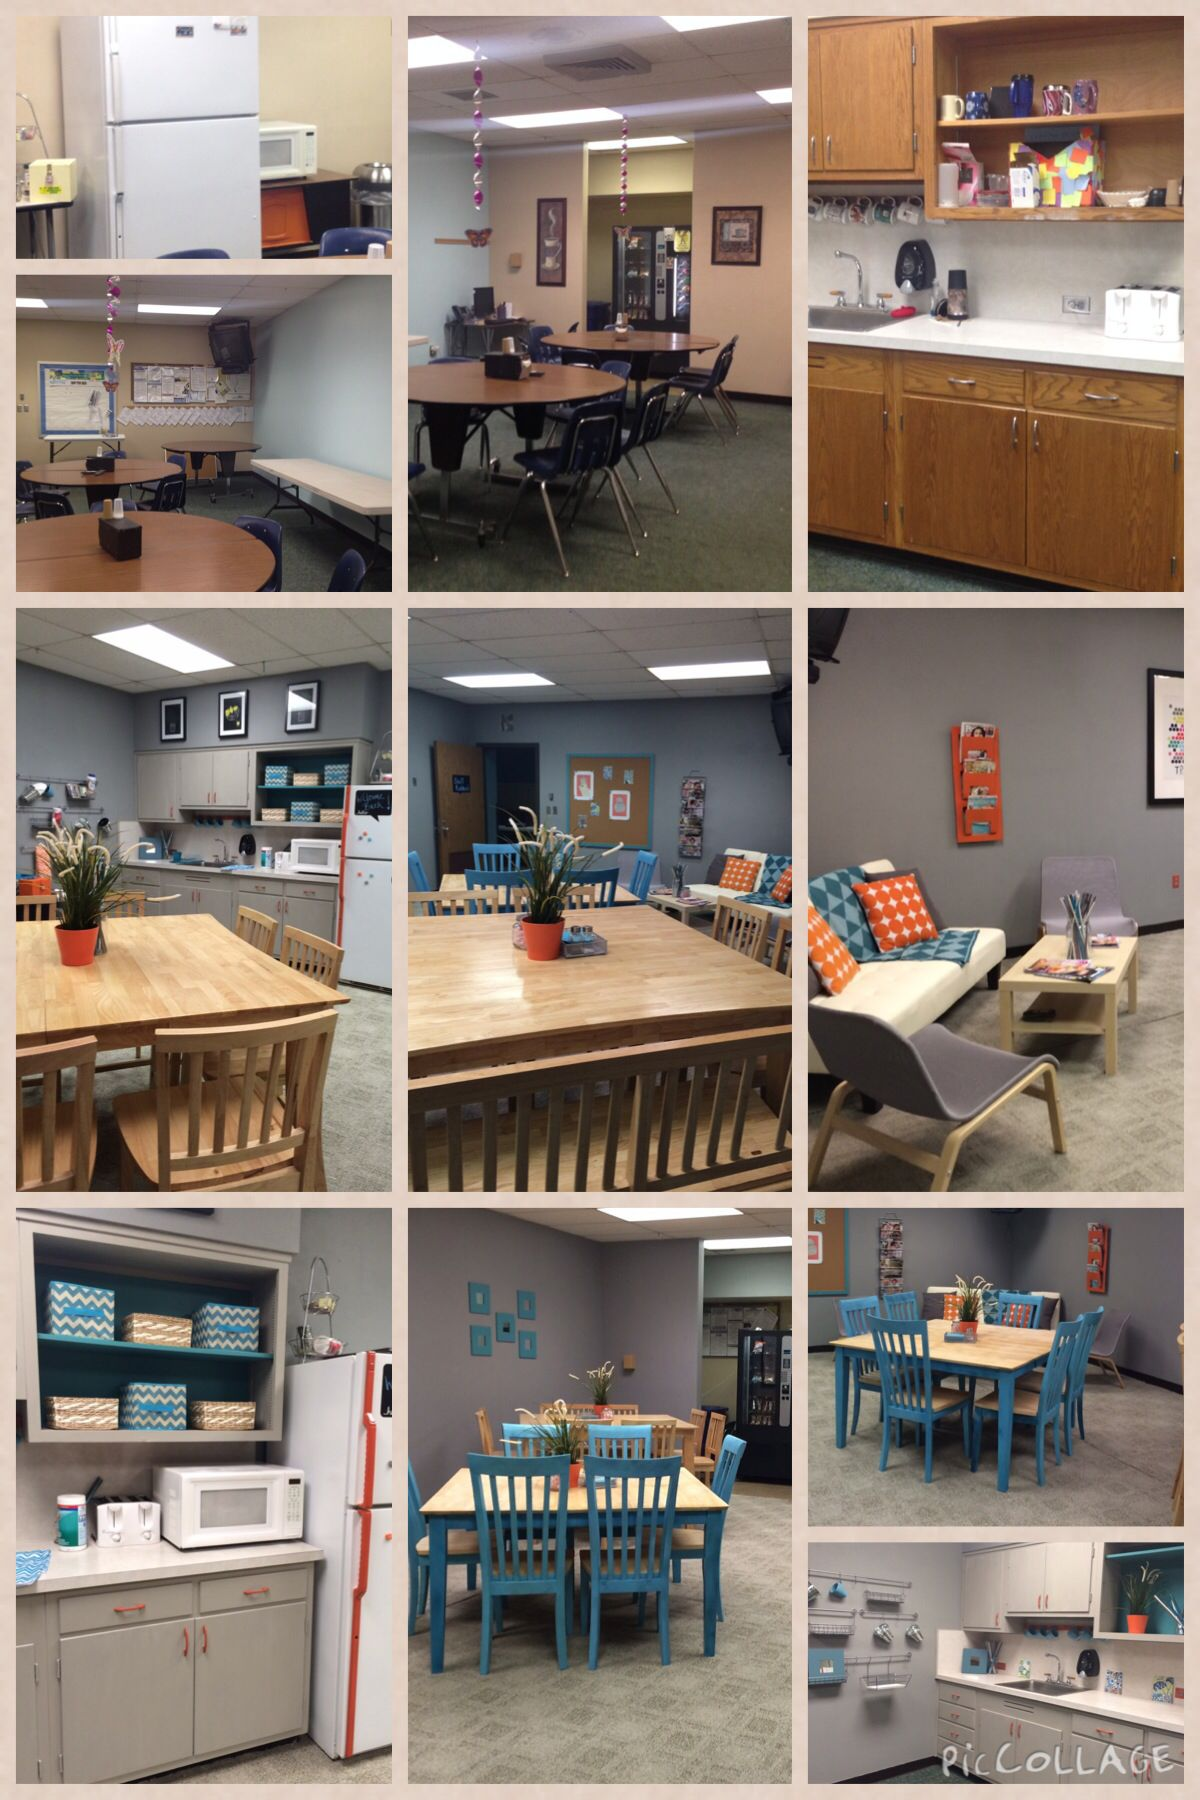 Office Break Room Design: Teachers Lounge Before And After Makeover